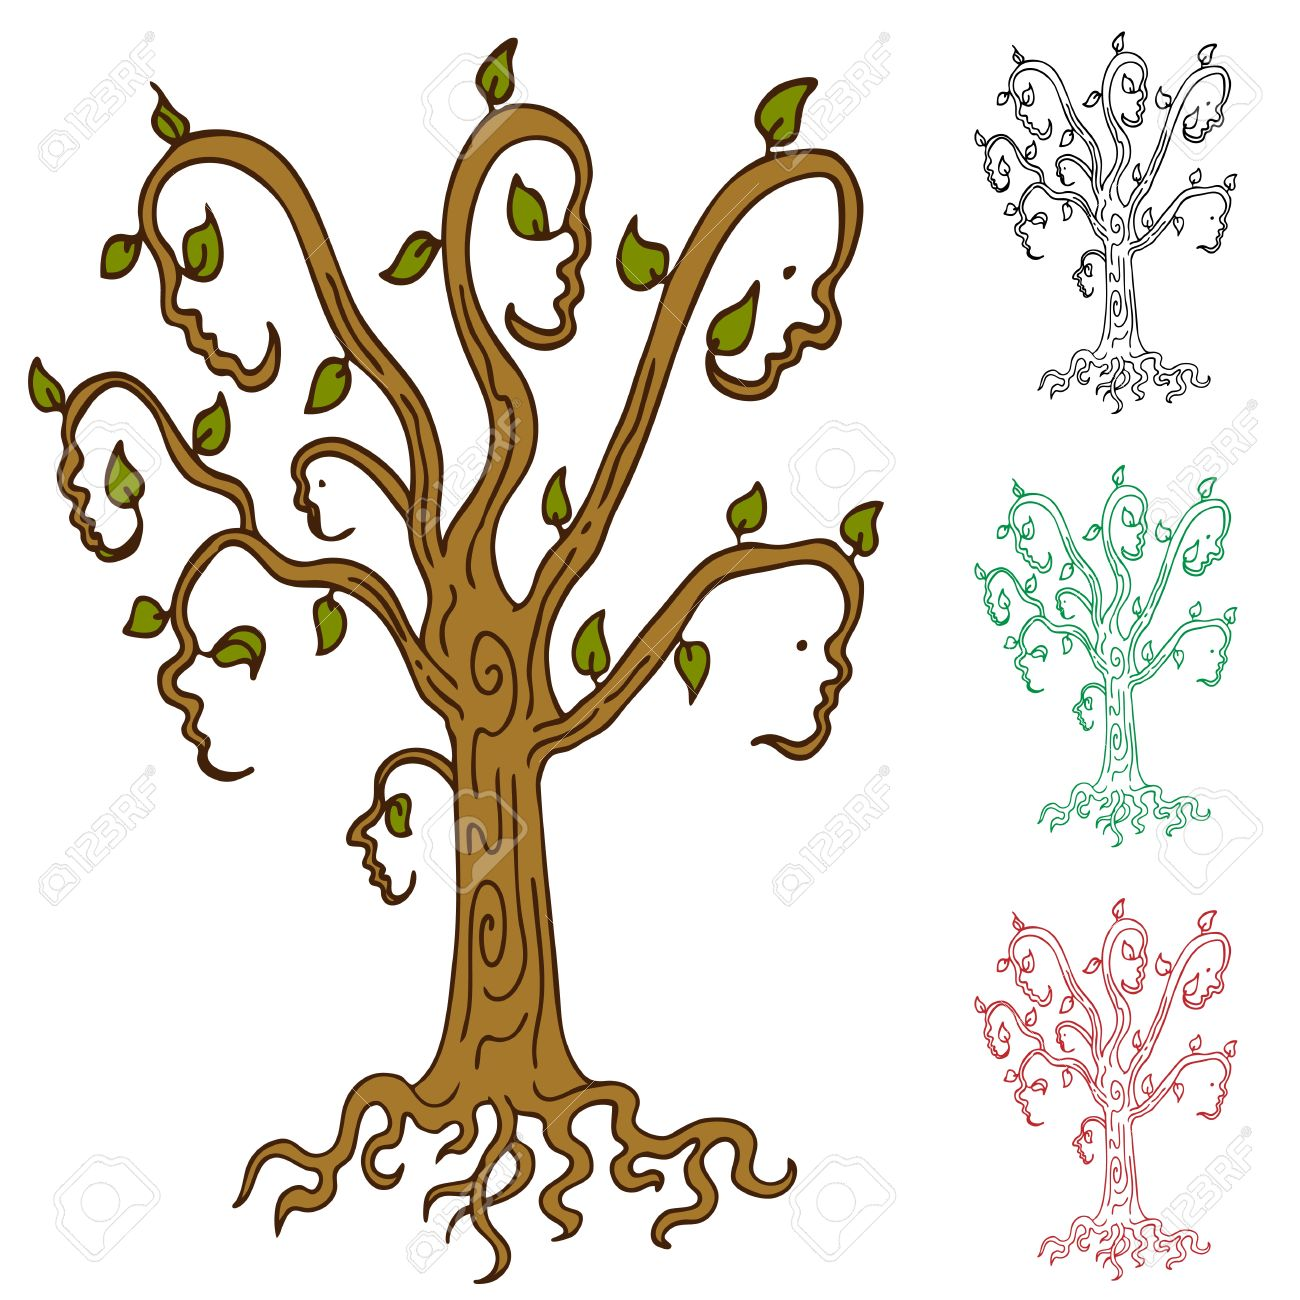 An abstract image representing a family tree. Stock Vector - 10171041